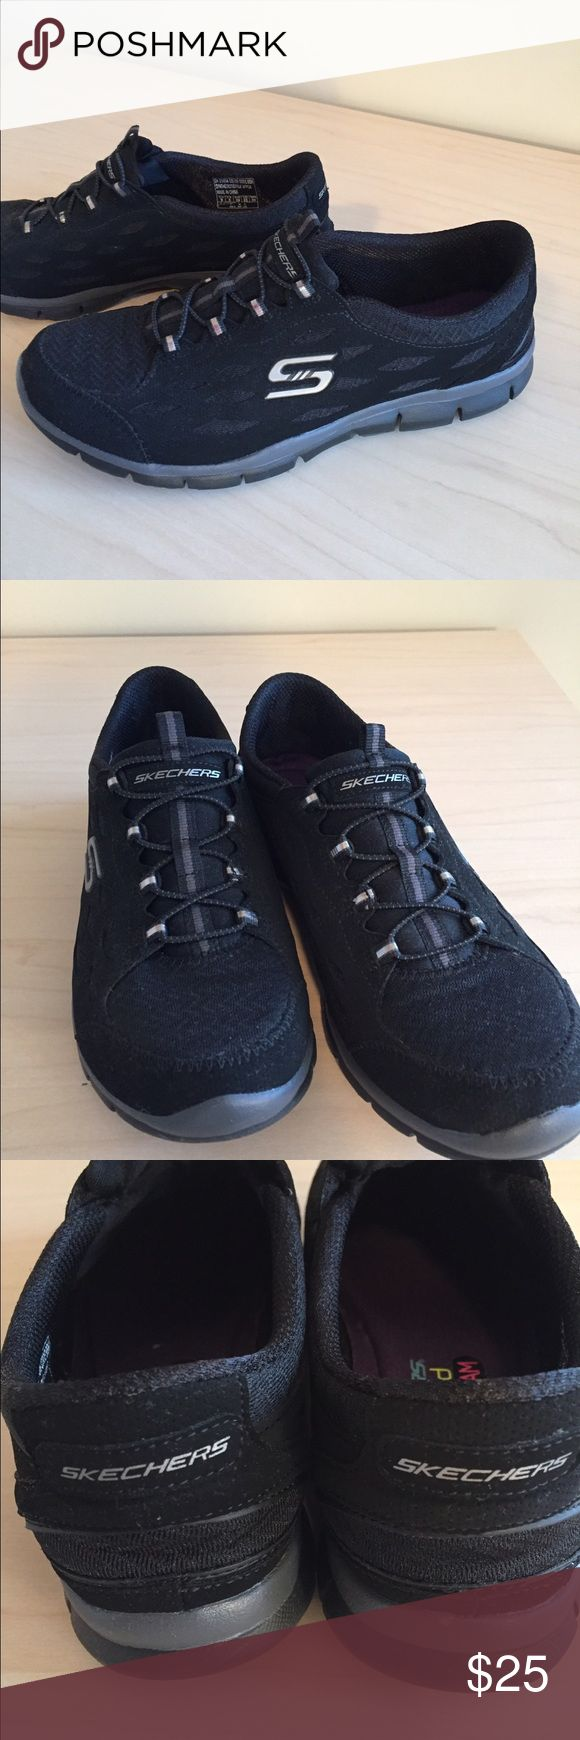 Skechers Air-Cooled Memory foam sneakers Ladies size 9 Skechers Air-Cooled Memory foam sneakers.  Have been worn but in great condition.  Simple black slip on sneaker, no tears. Skechers Shoes Sneakers